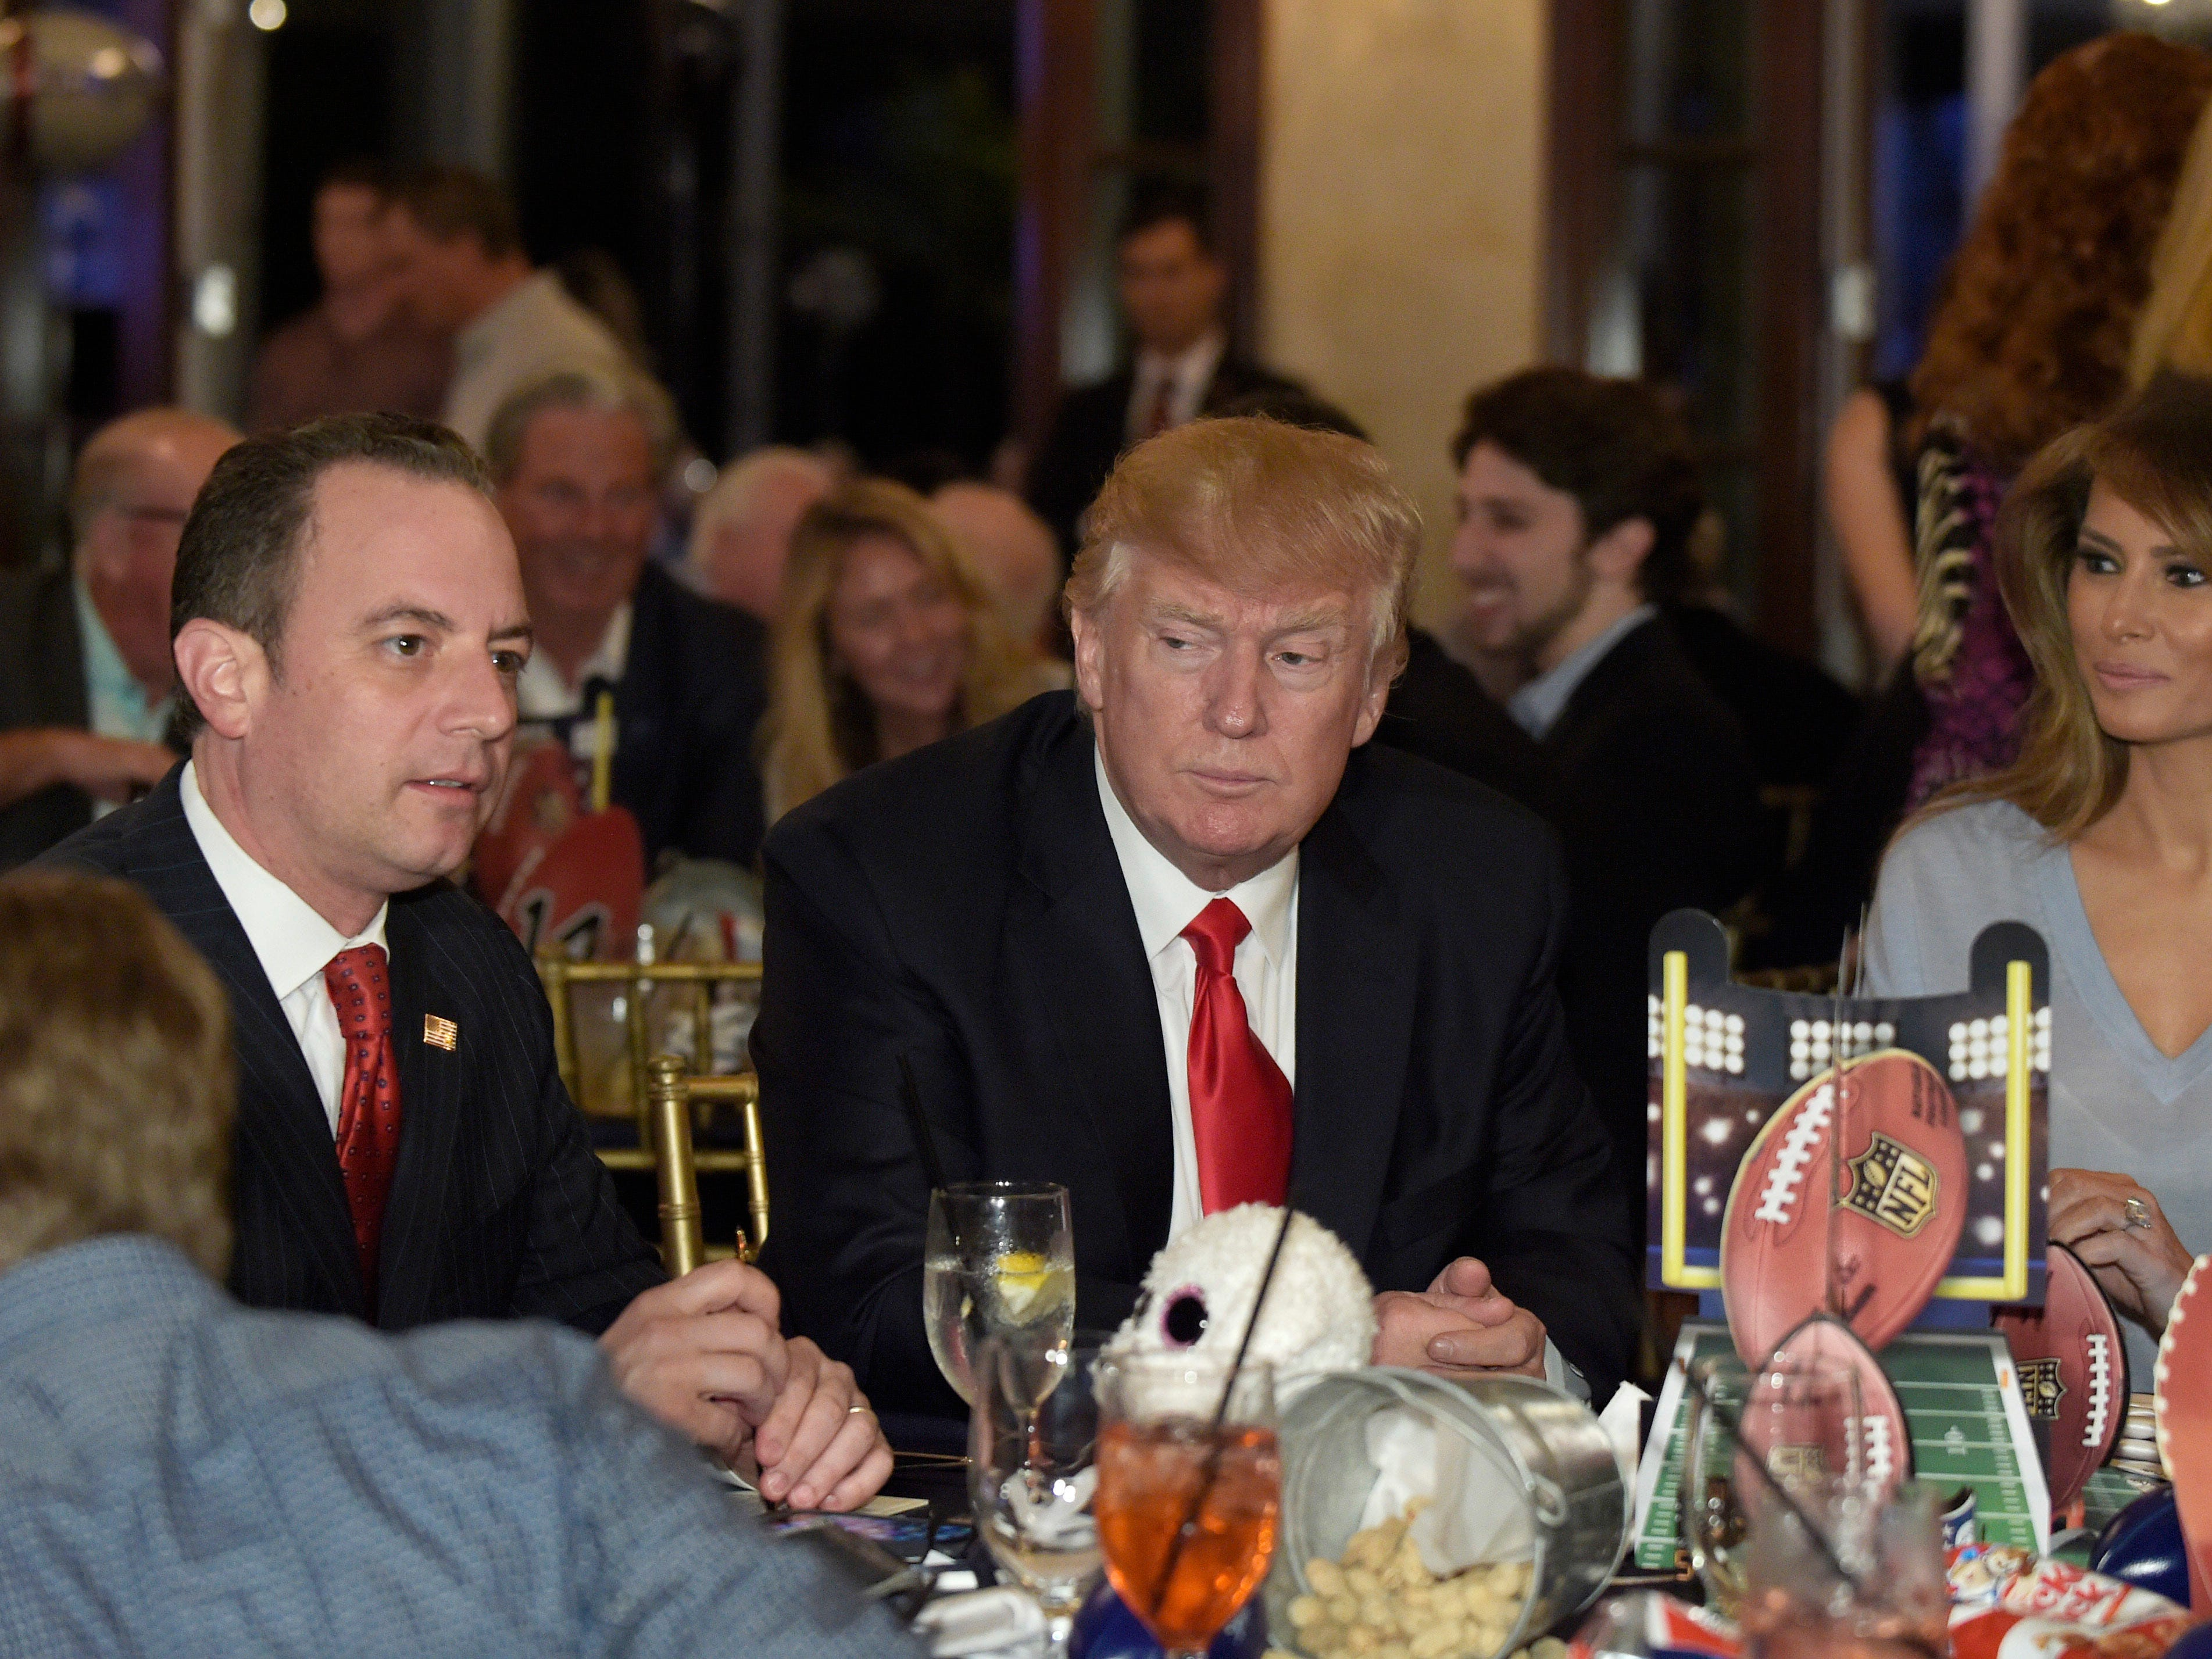 President Donald Trump (center), first lady Melania Trump (second from right), and White House Chief of Staff Reince Priebus attend a Super Bowl party at Trump International Golf Club in West Palm Beach, Fla.